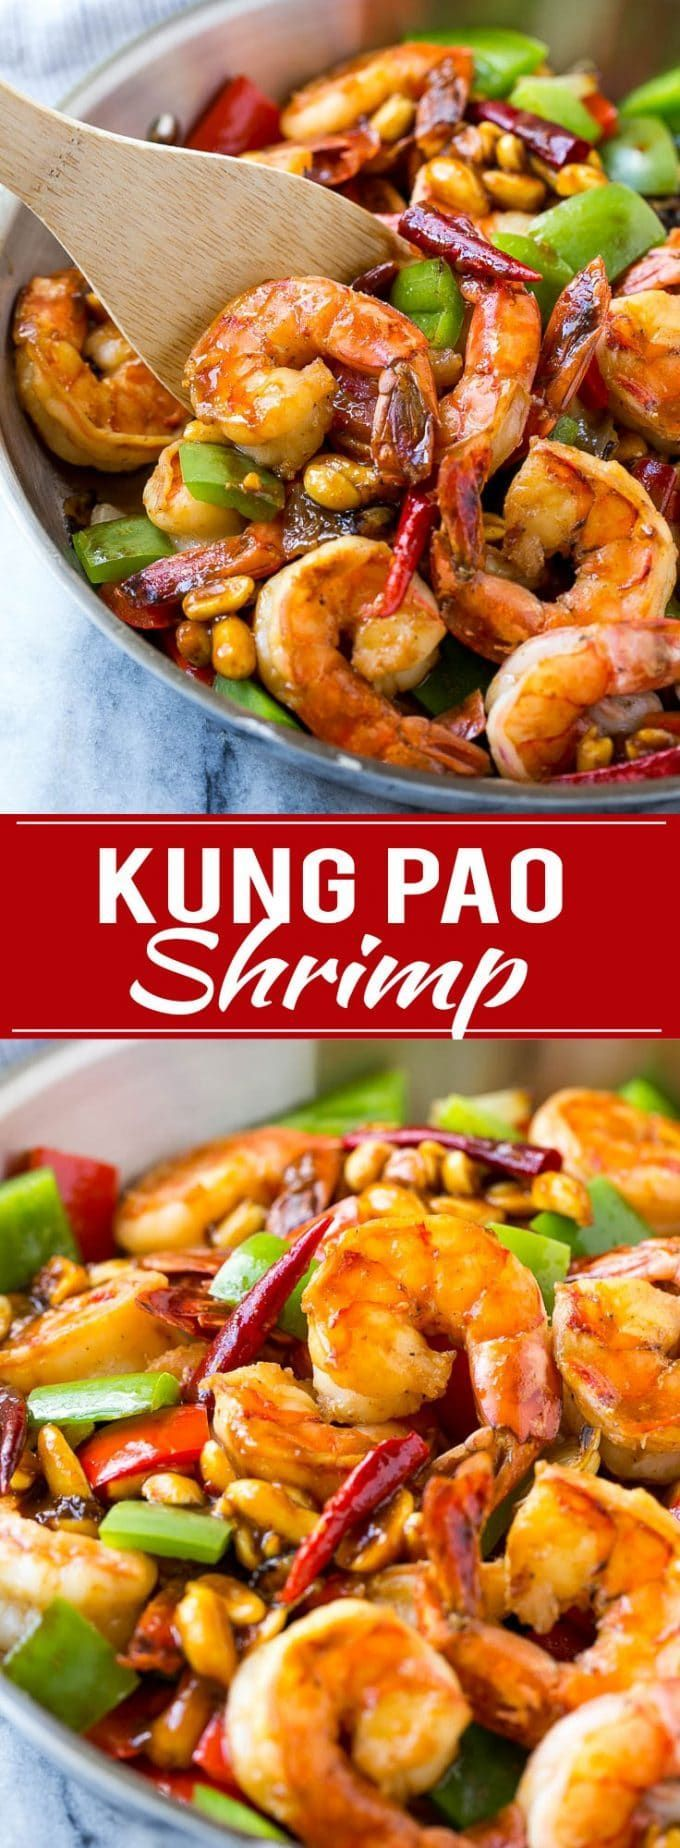 what is kung pow sauce